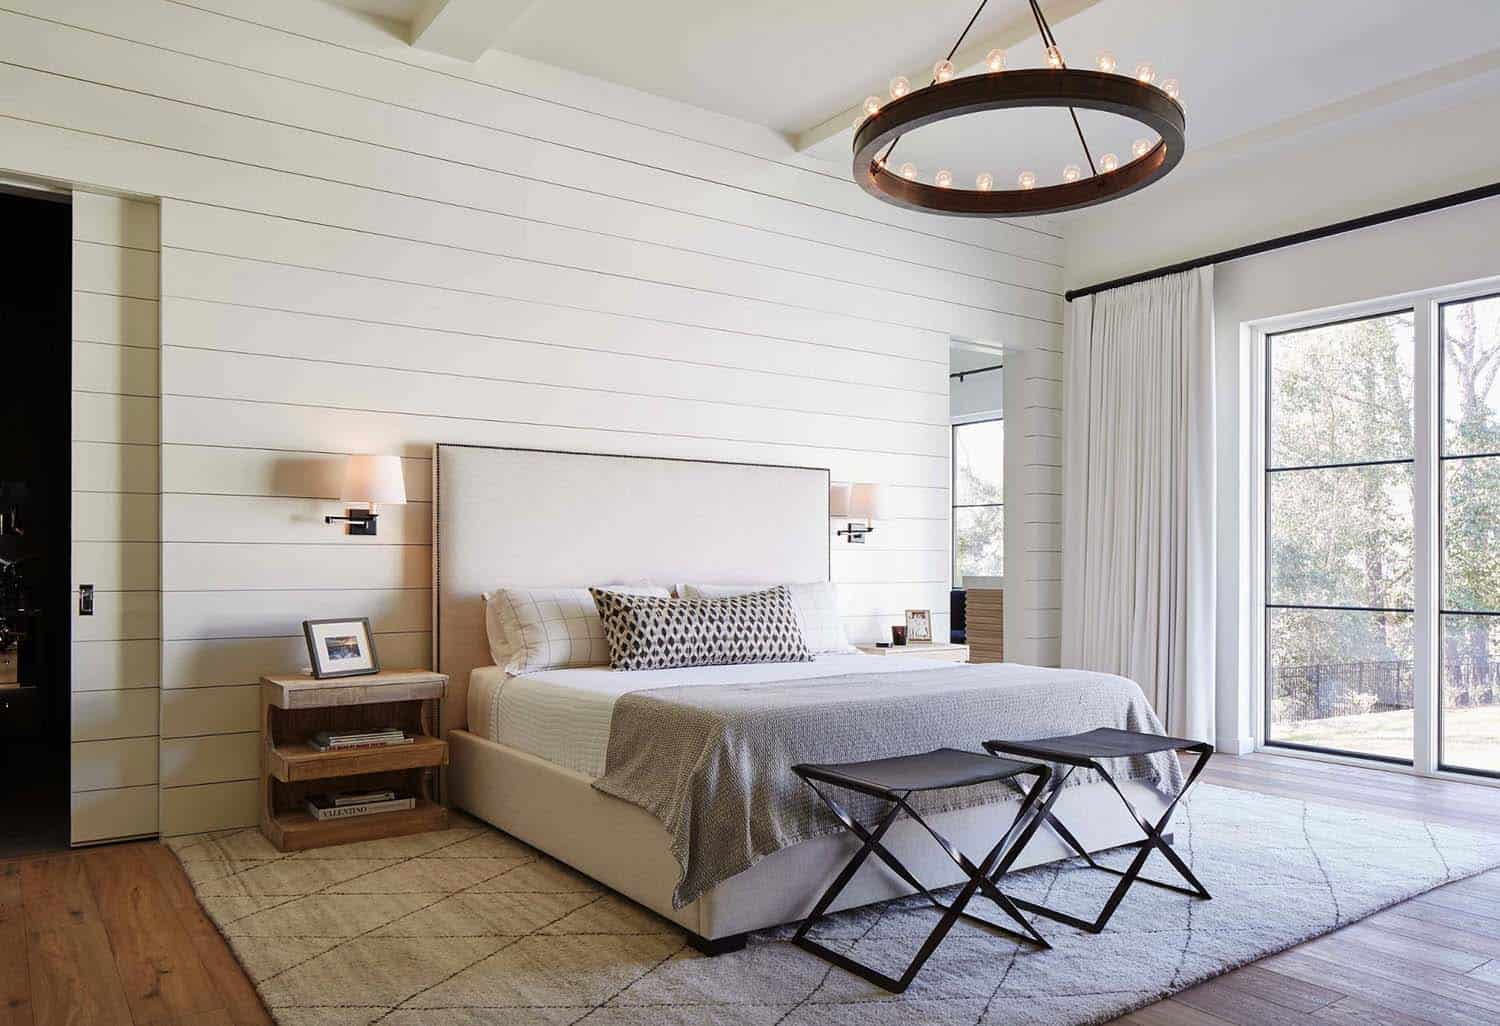 25 Absolutely breathtaking farmhouse style bedroom ideas